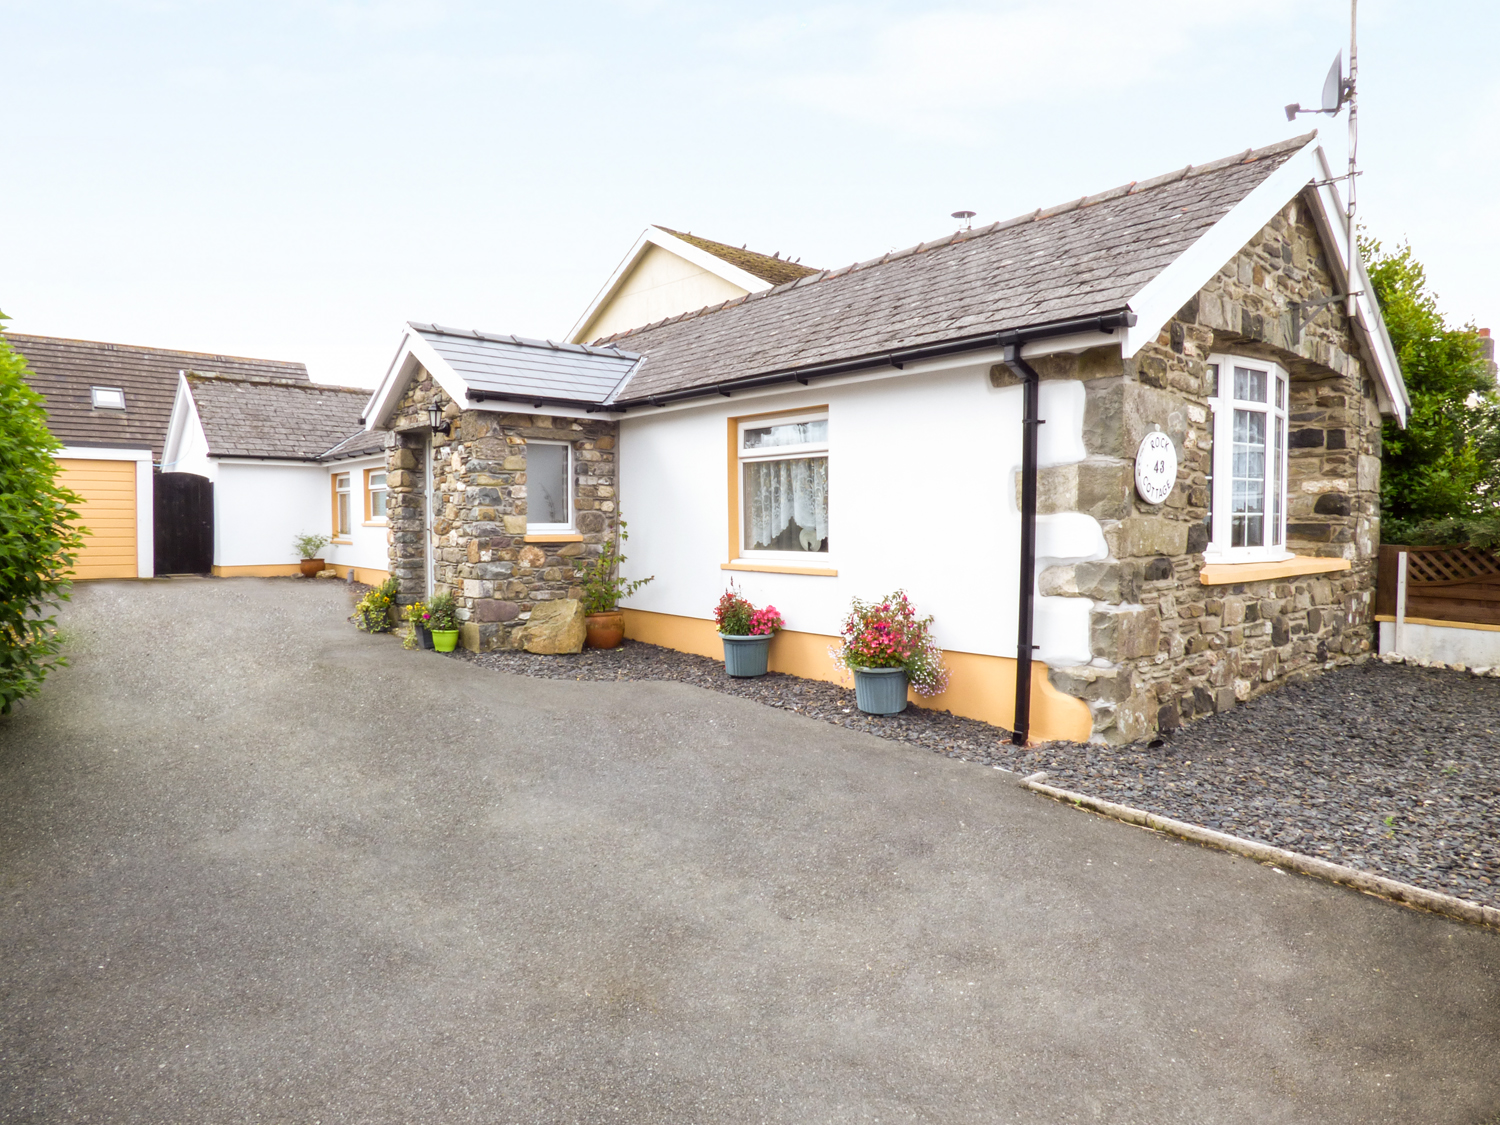 3 bedroom Cottage for rent in Fishguard